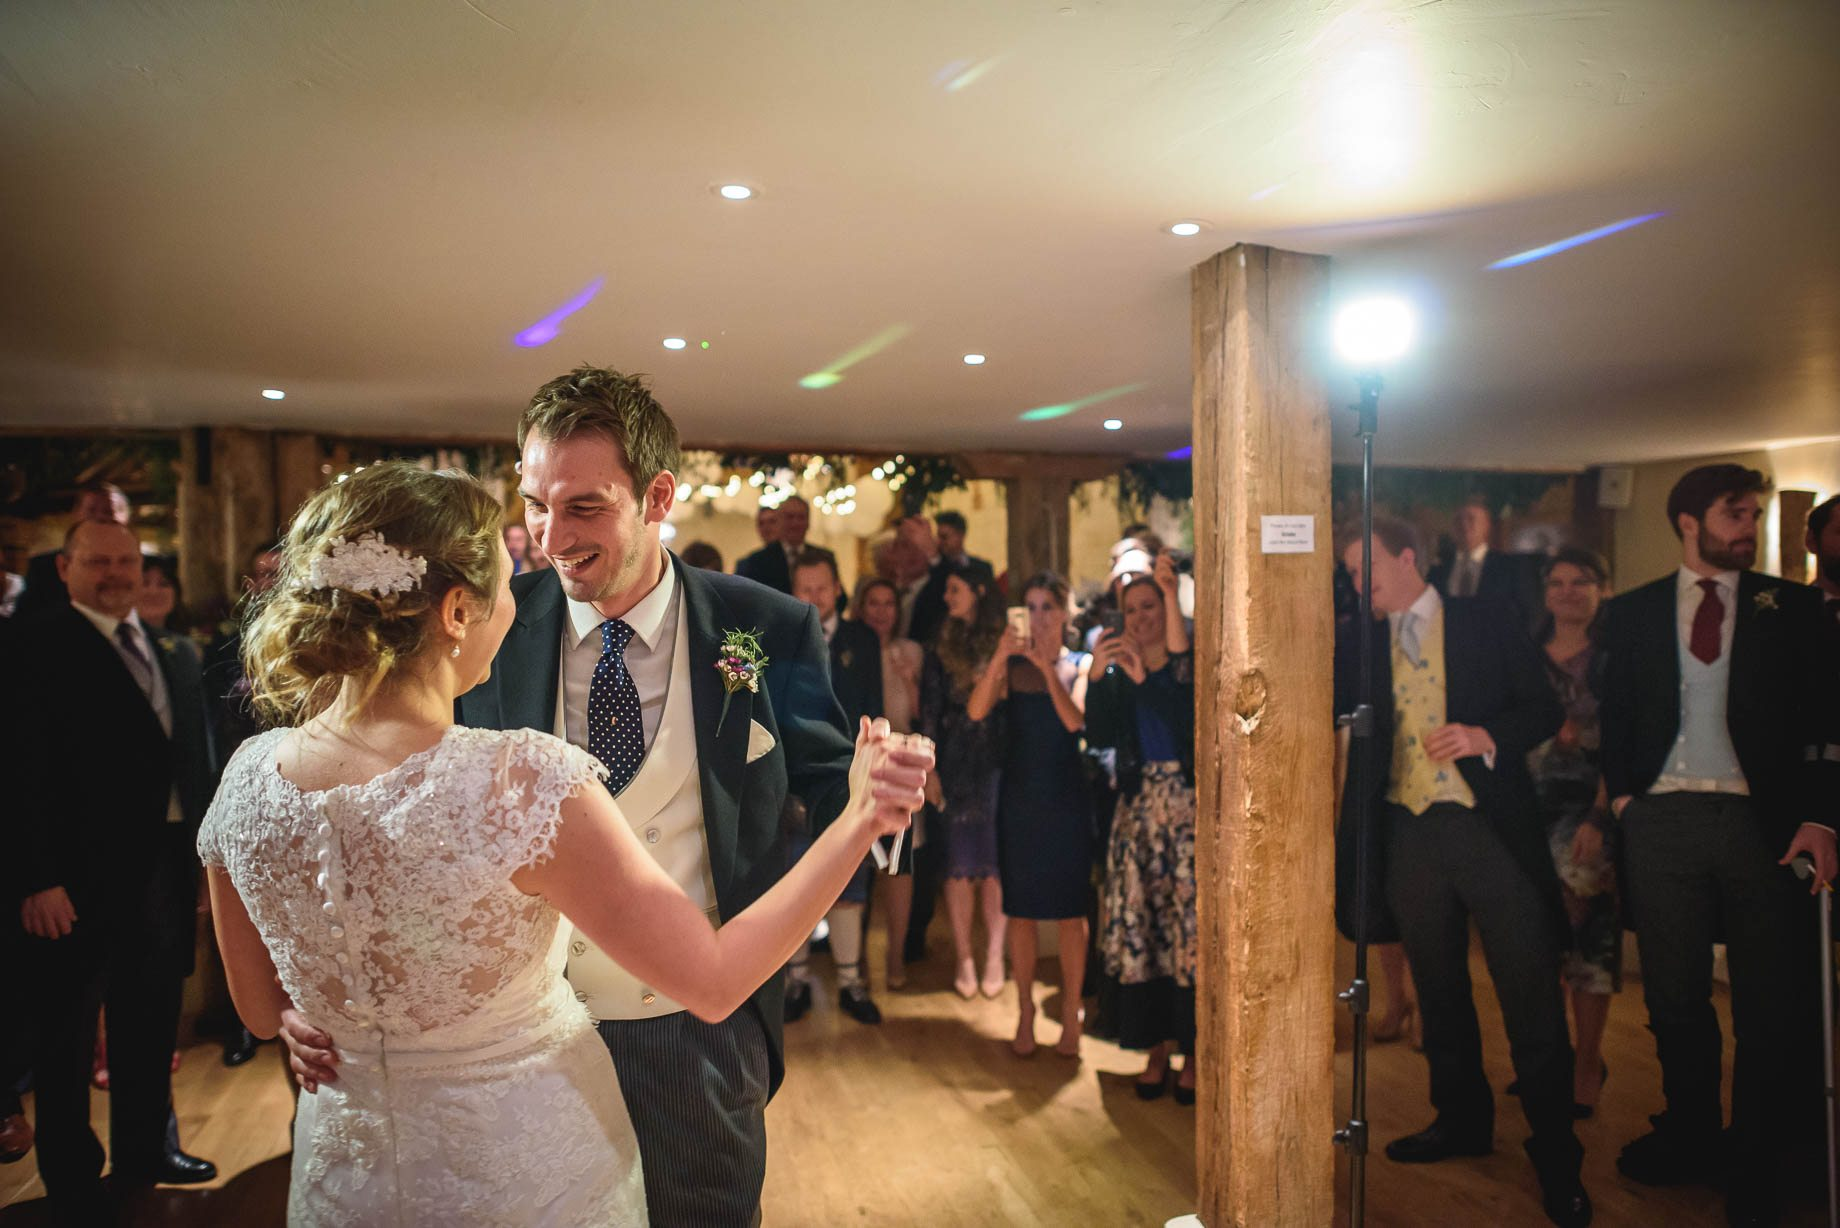 Bury Court Barn wedding photography - Ashley and Henry by Guy Collier Photography (165 of 188)